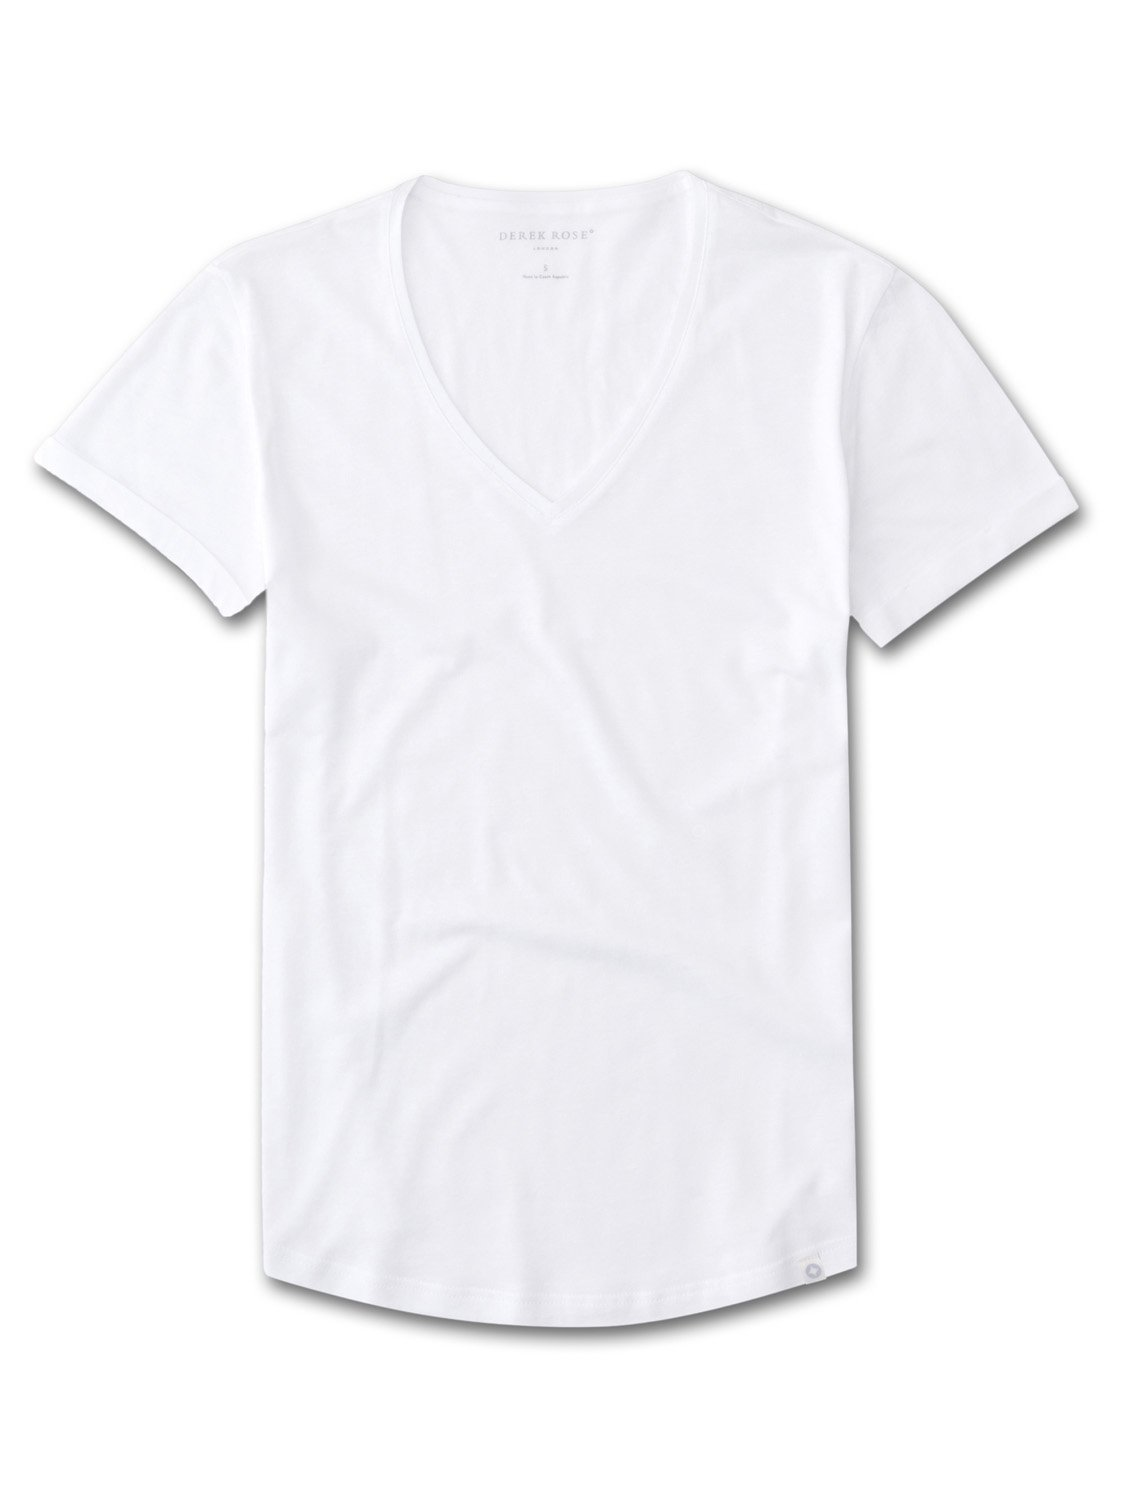 Women's V-Neck Leisure T-Shirt Riley Pima Cotton White